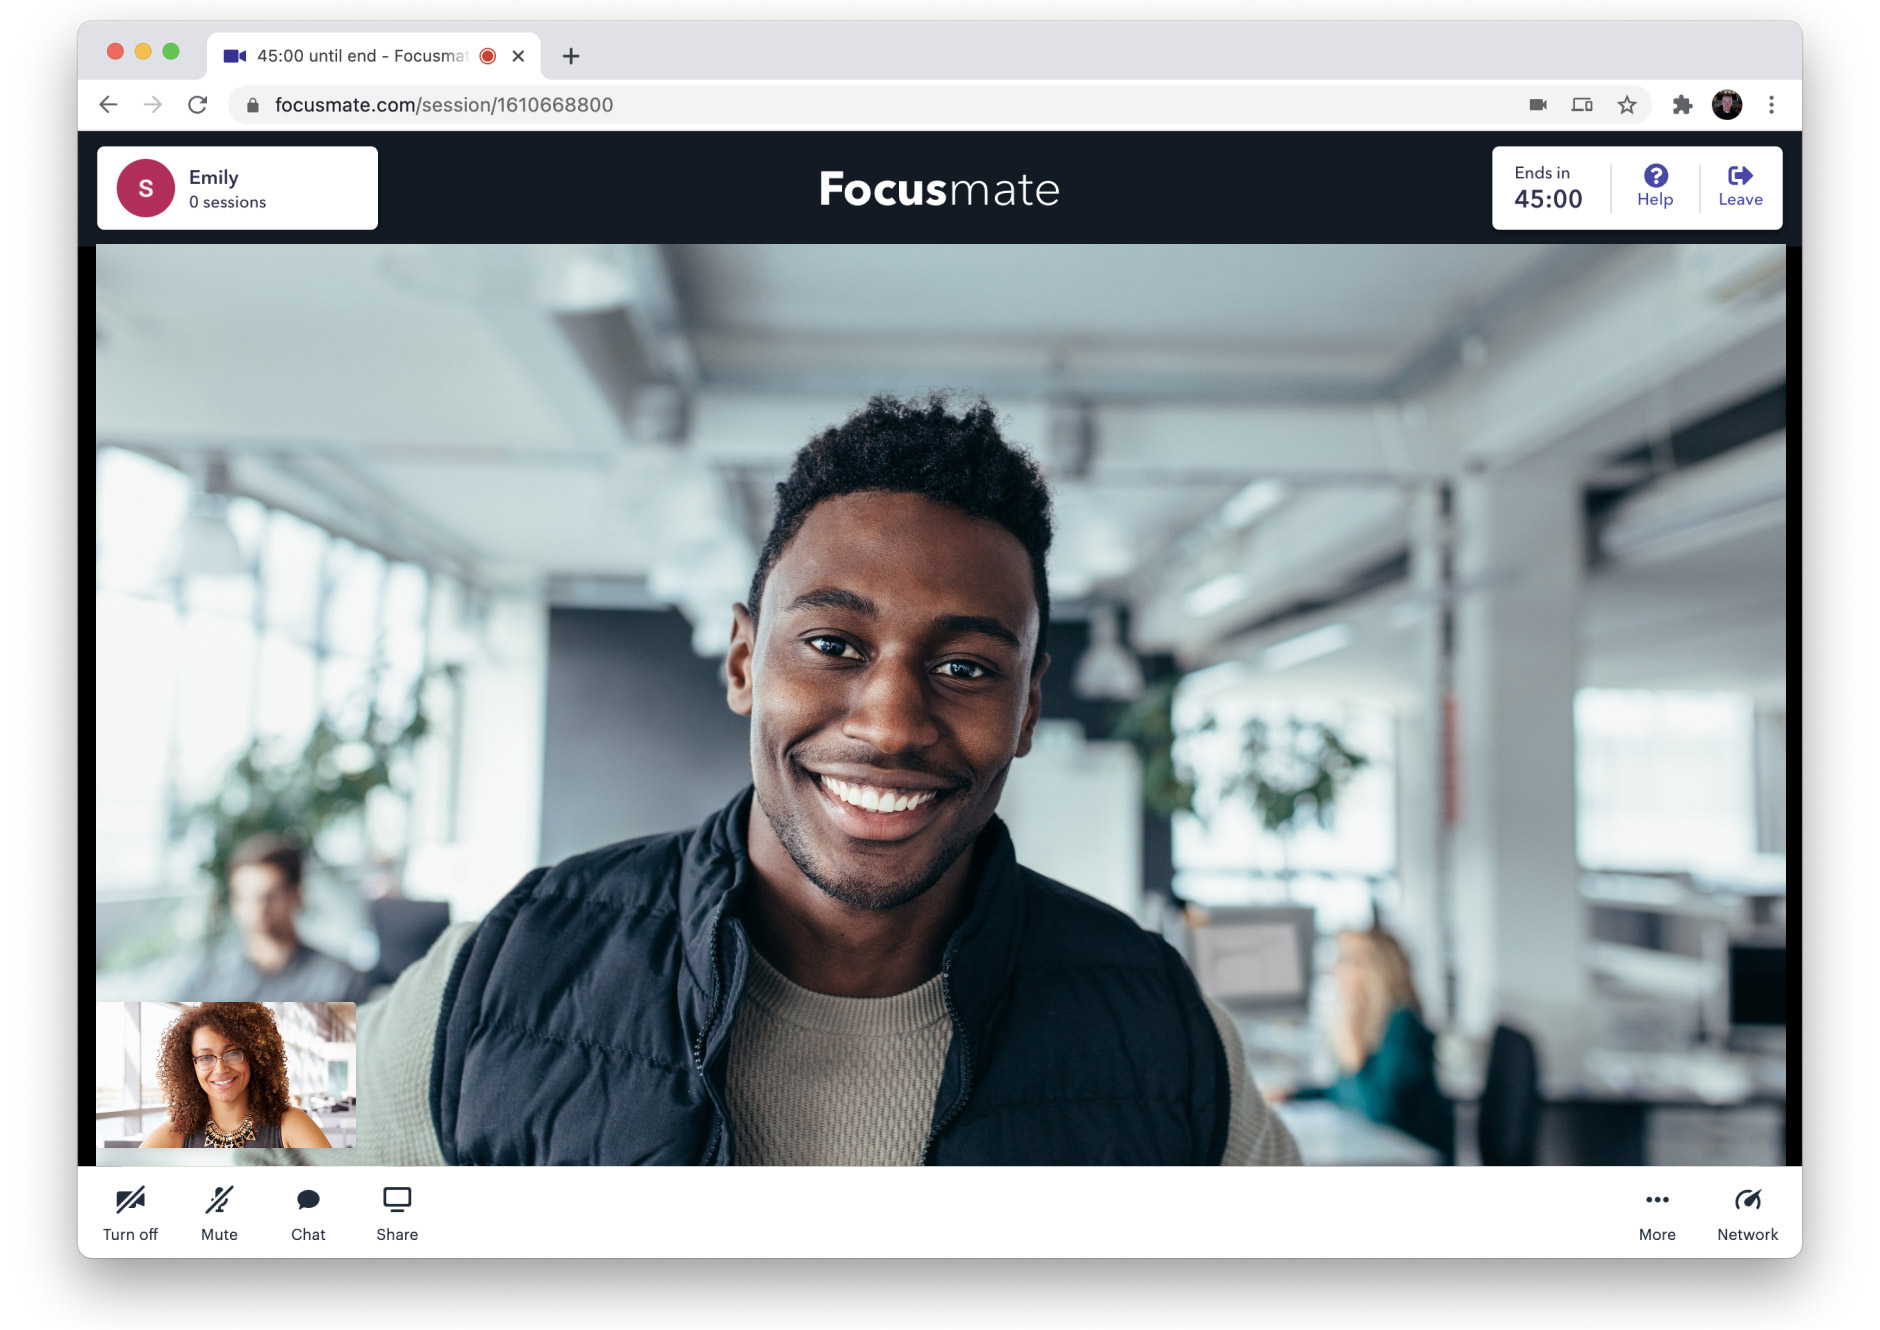 Focusmate video call with Daily prebuilt UI